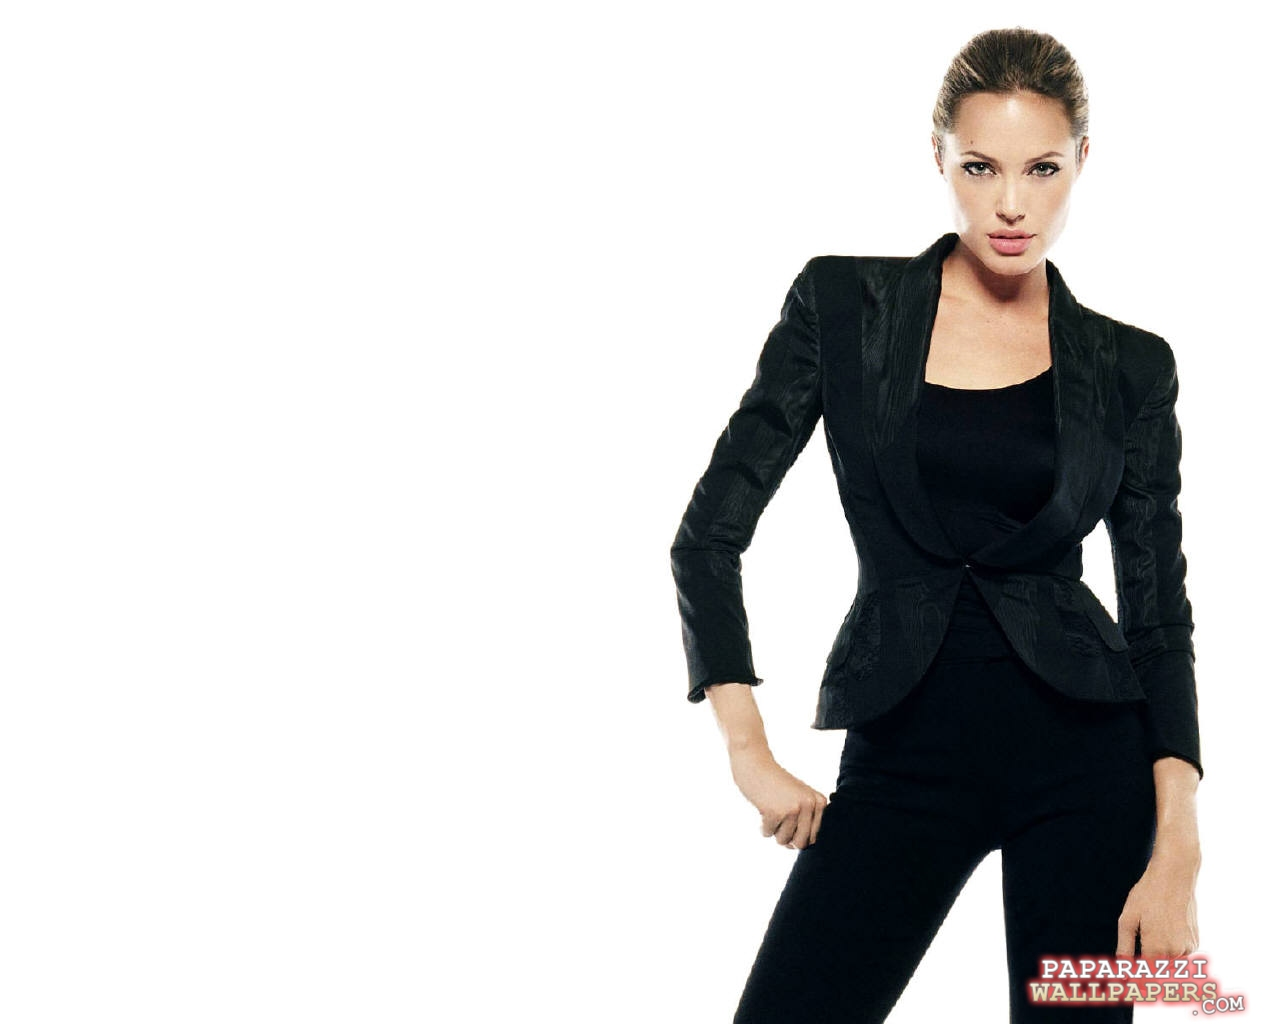 angelina jolie wallpapers 090